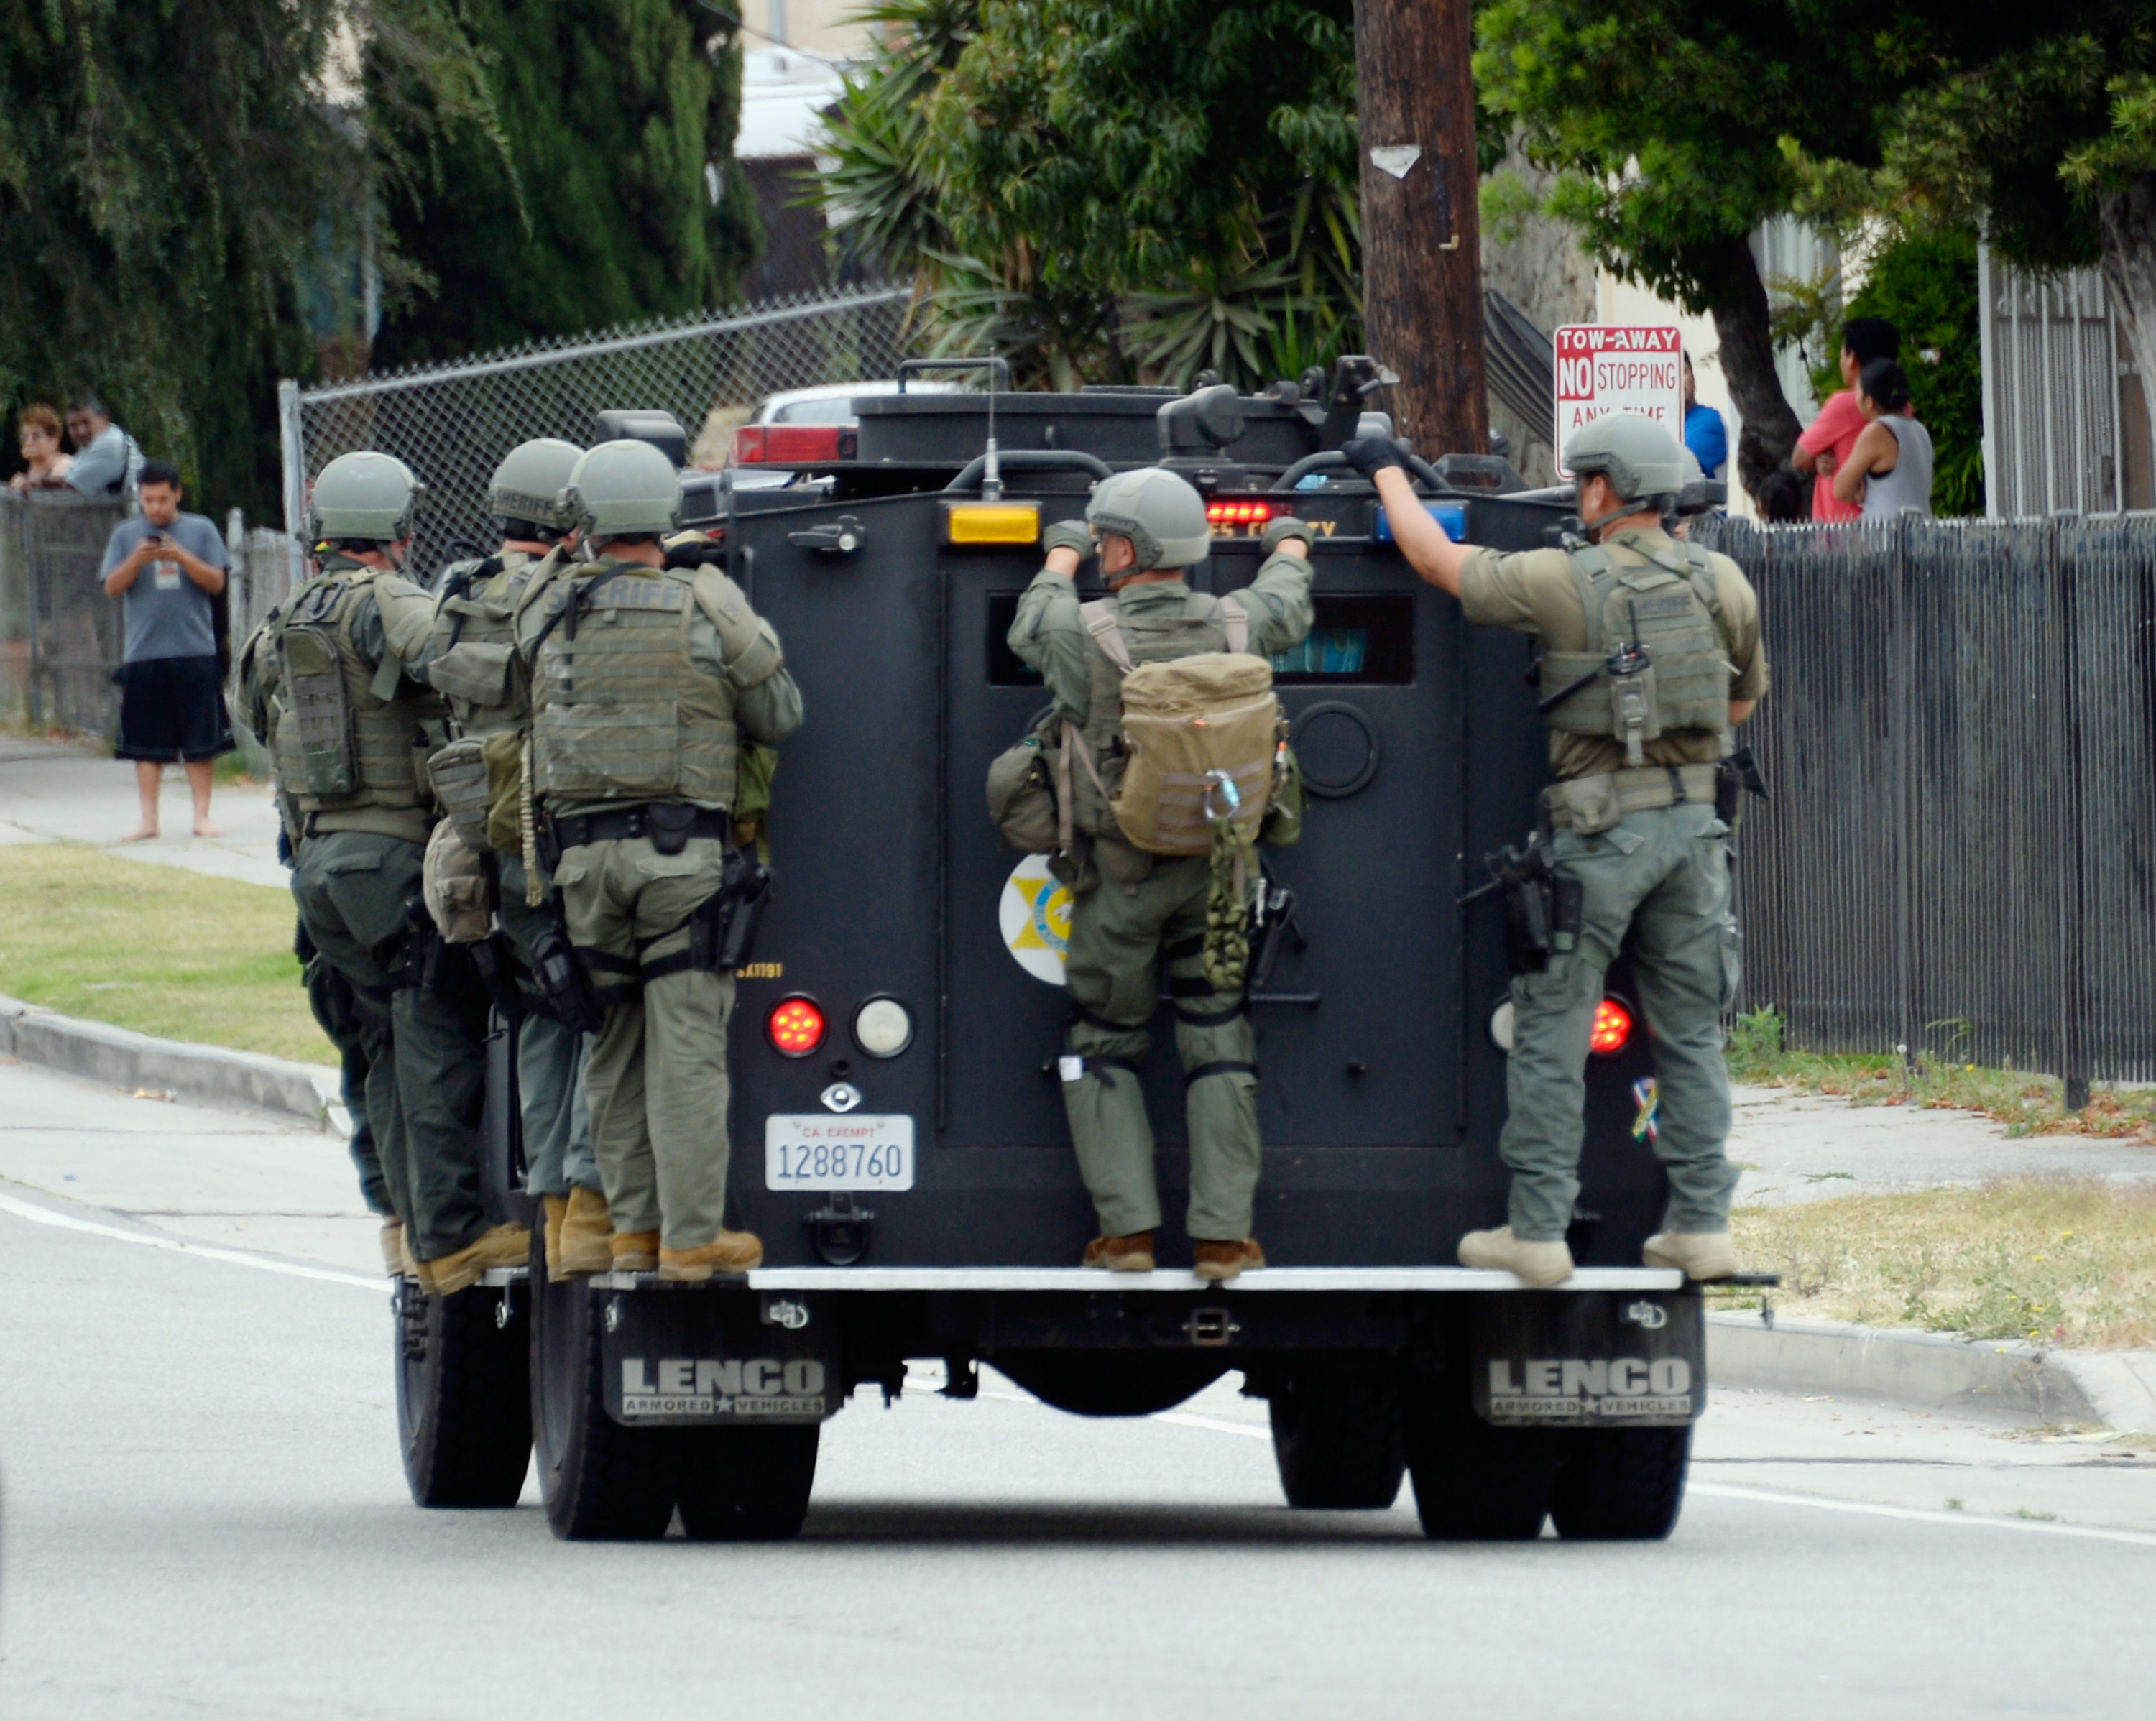 Swatting over Call of Duty game results in deadly police shooting of